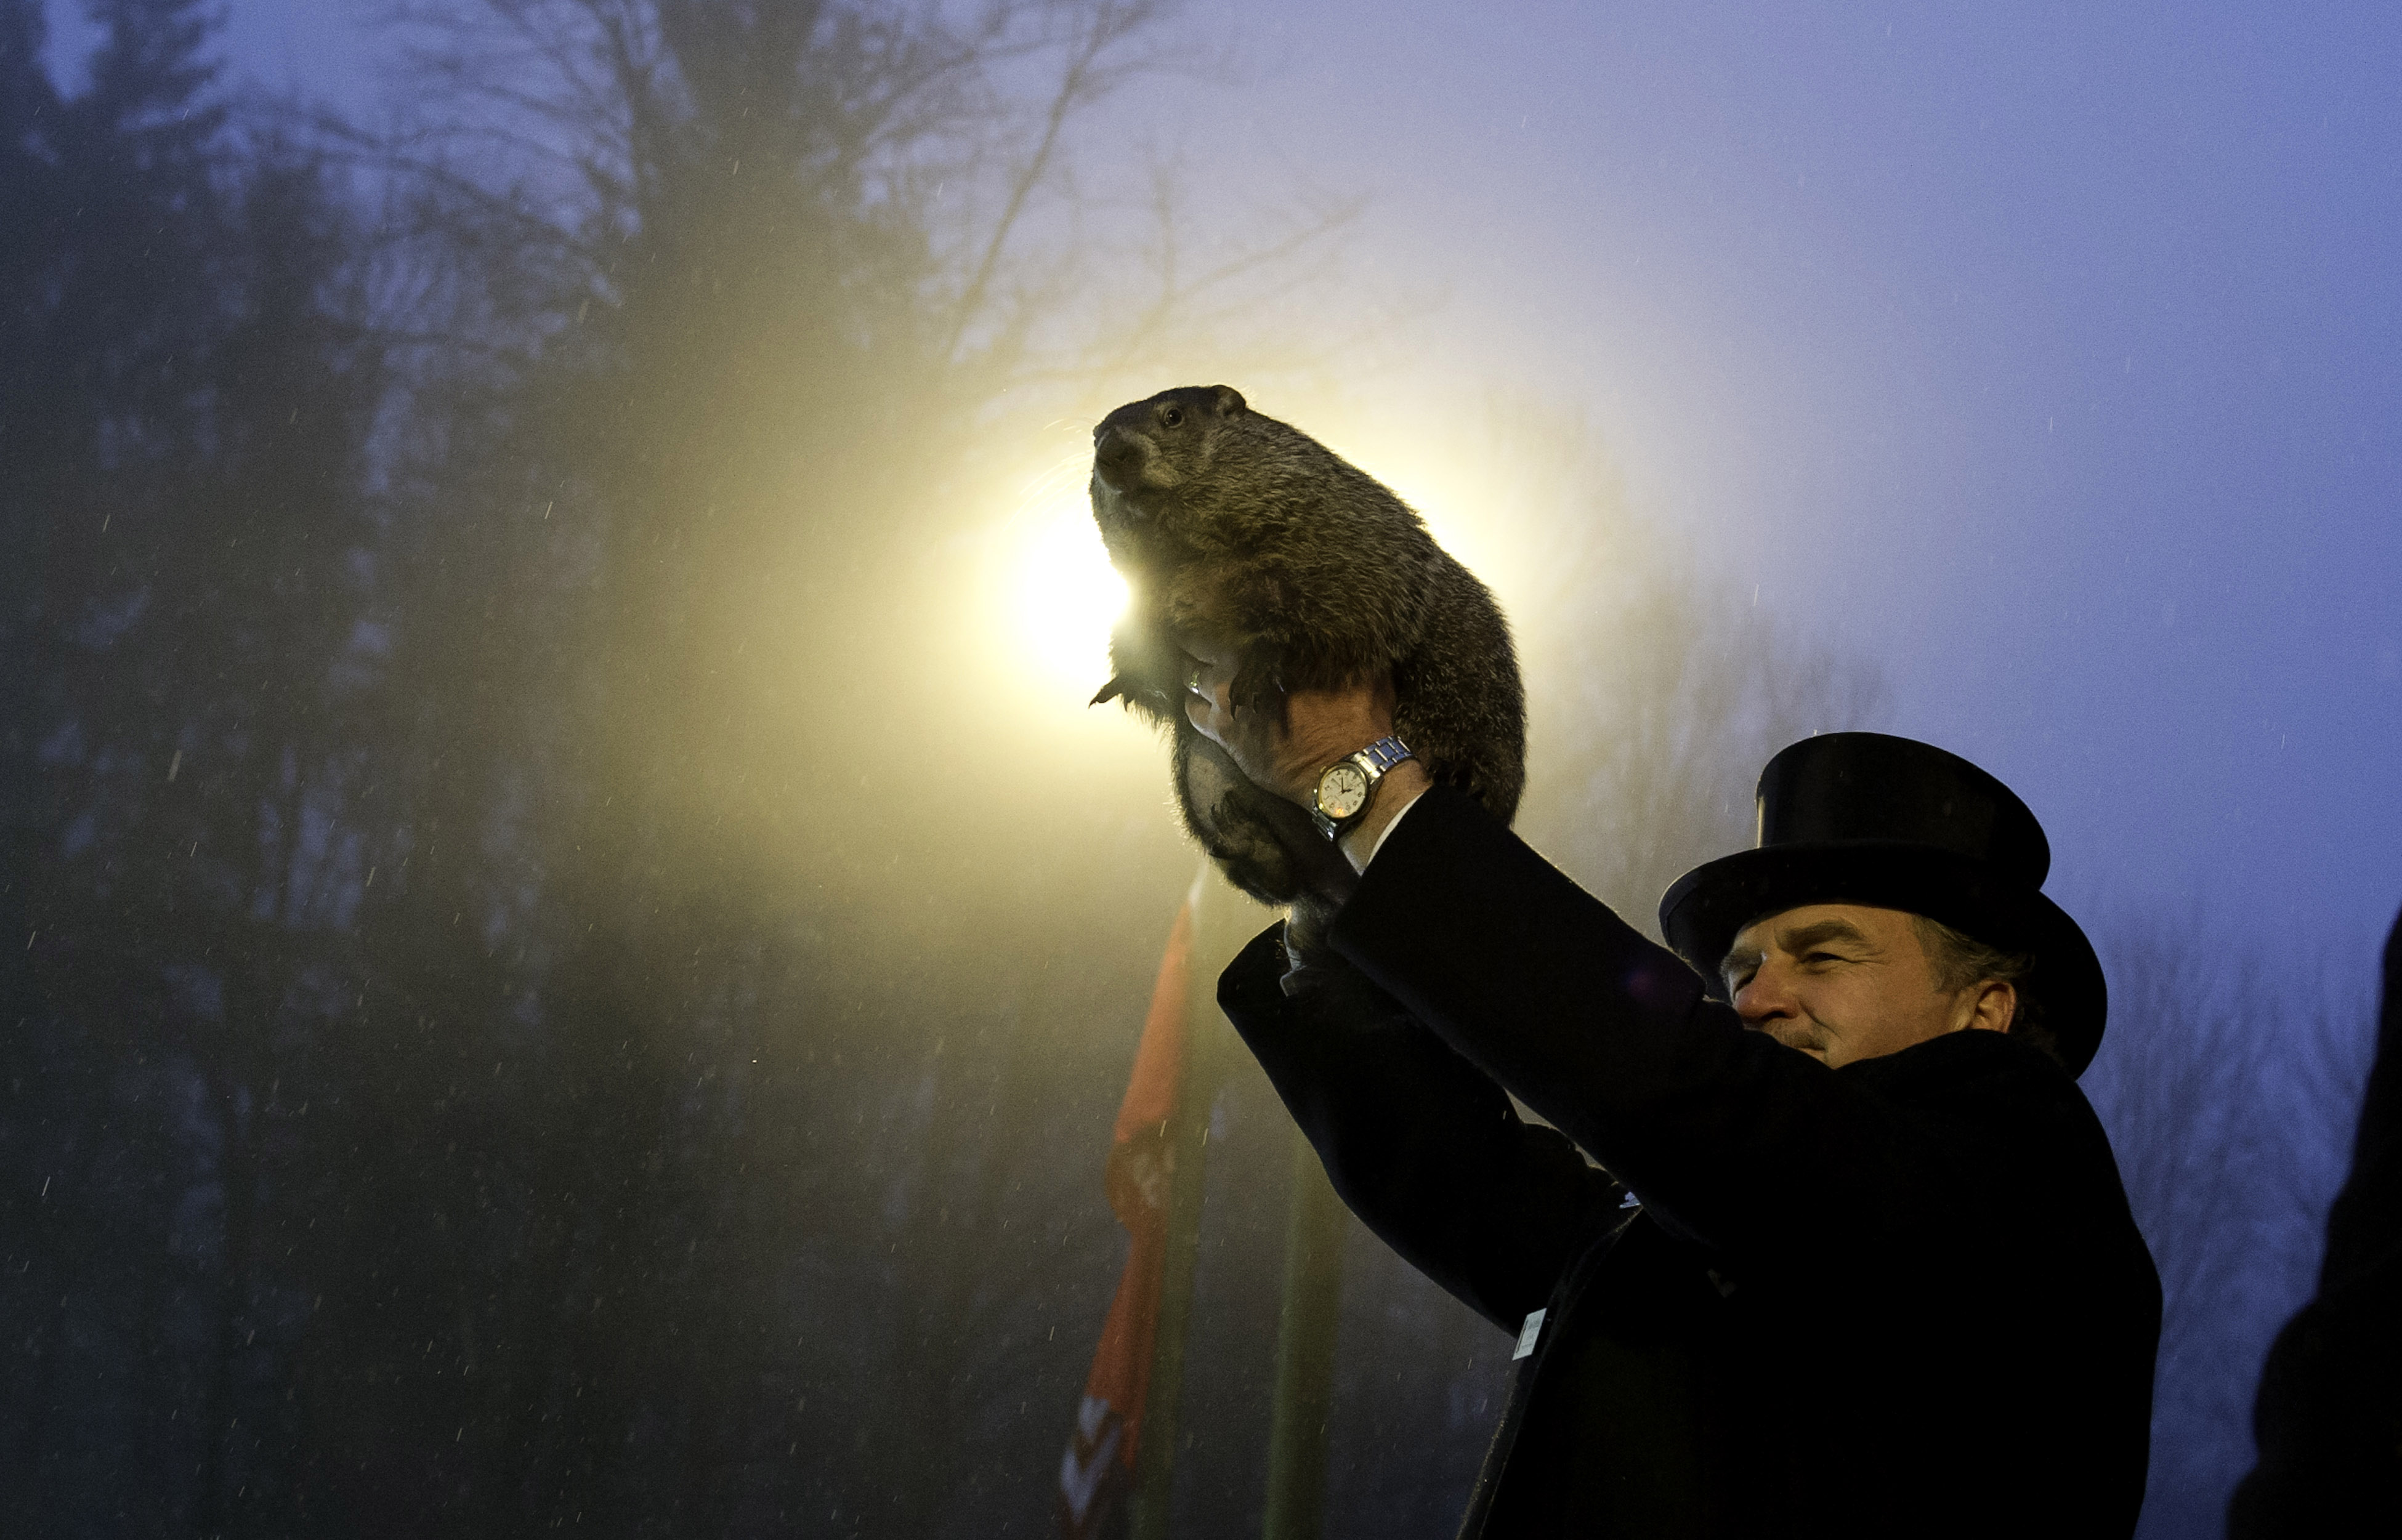 Groundhog Day How It Started